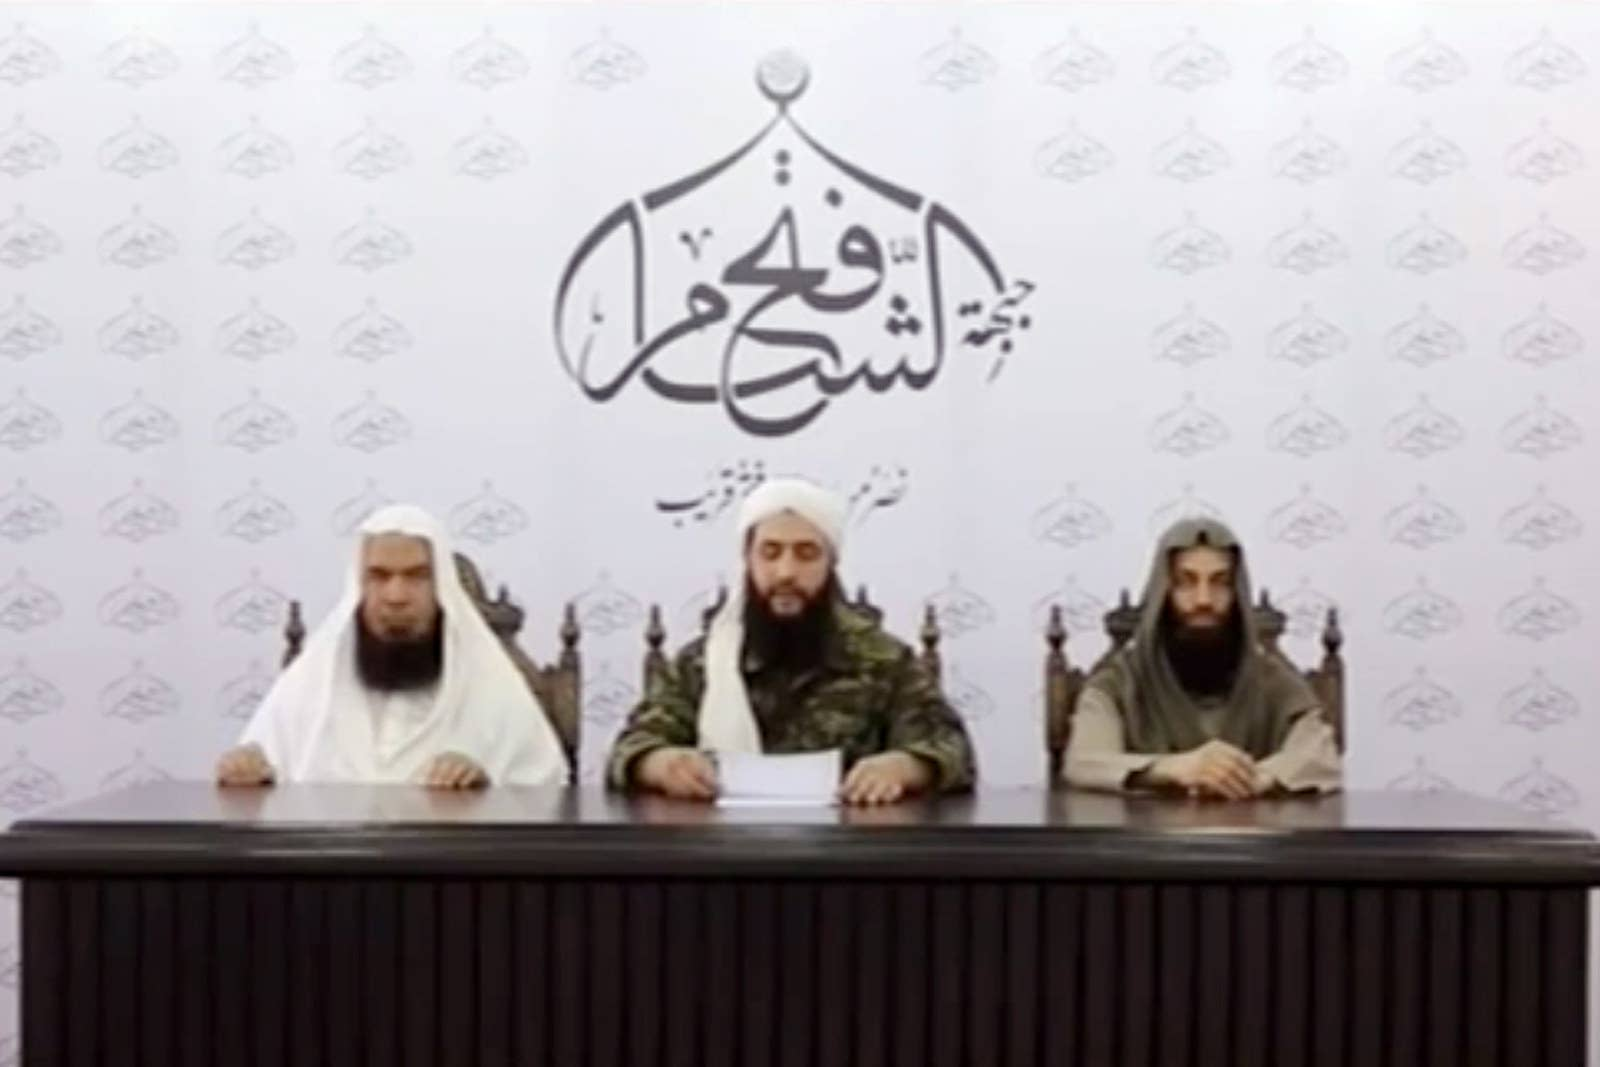 Abu Mohammad al-Julani, then the leader of the Syrian al-Qaeda branch the al-Nusra Front, announcing in mid-2016 that the group is breaking ties with al-Qaeda and changing its name.